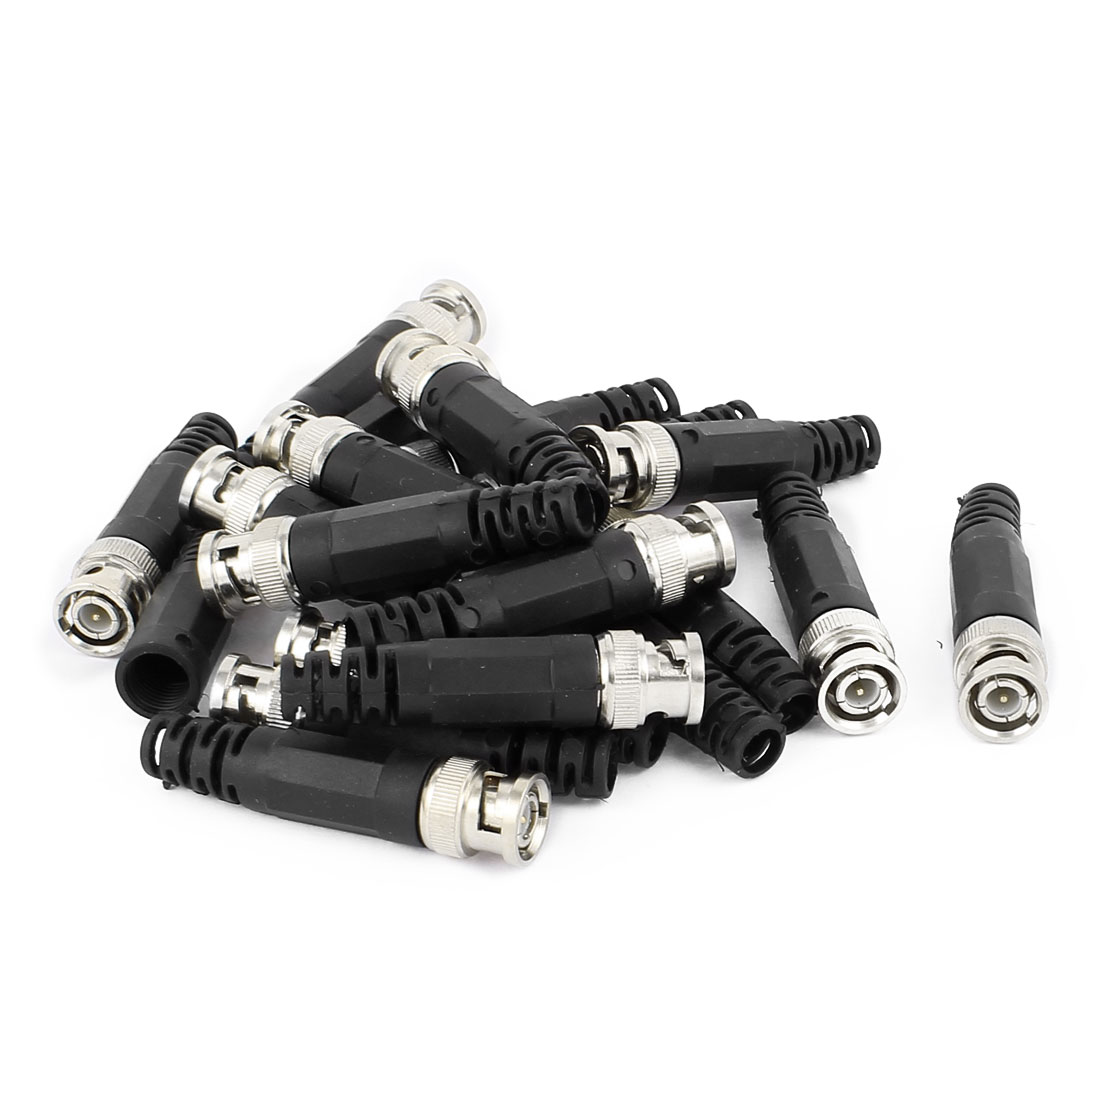 20Pcs Plastic Tail BNC Male Straight Connector for CCTV Camera Coaxial Cable